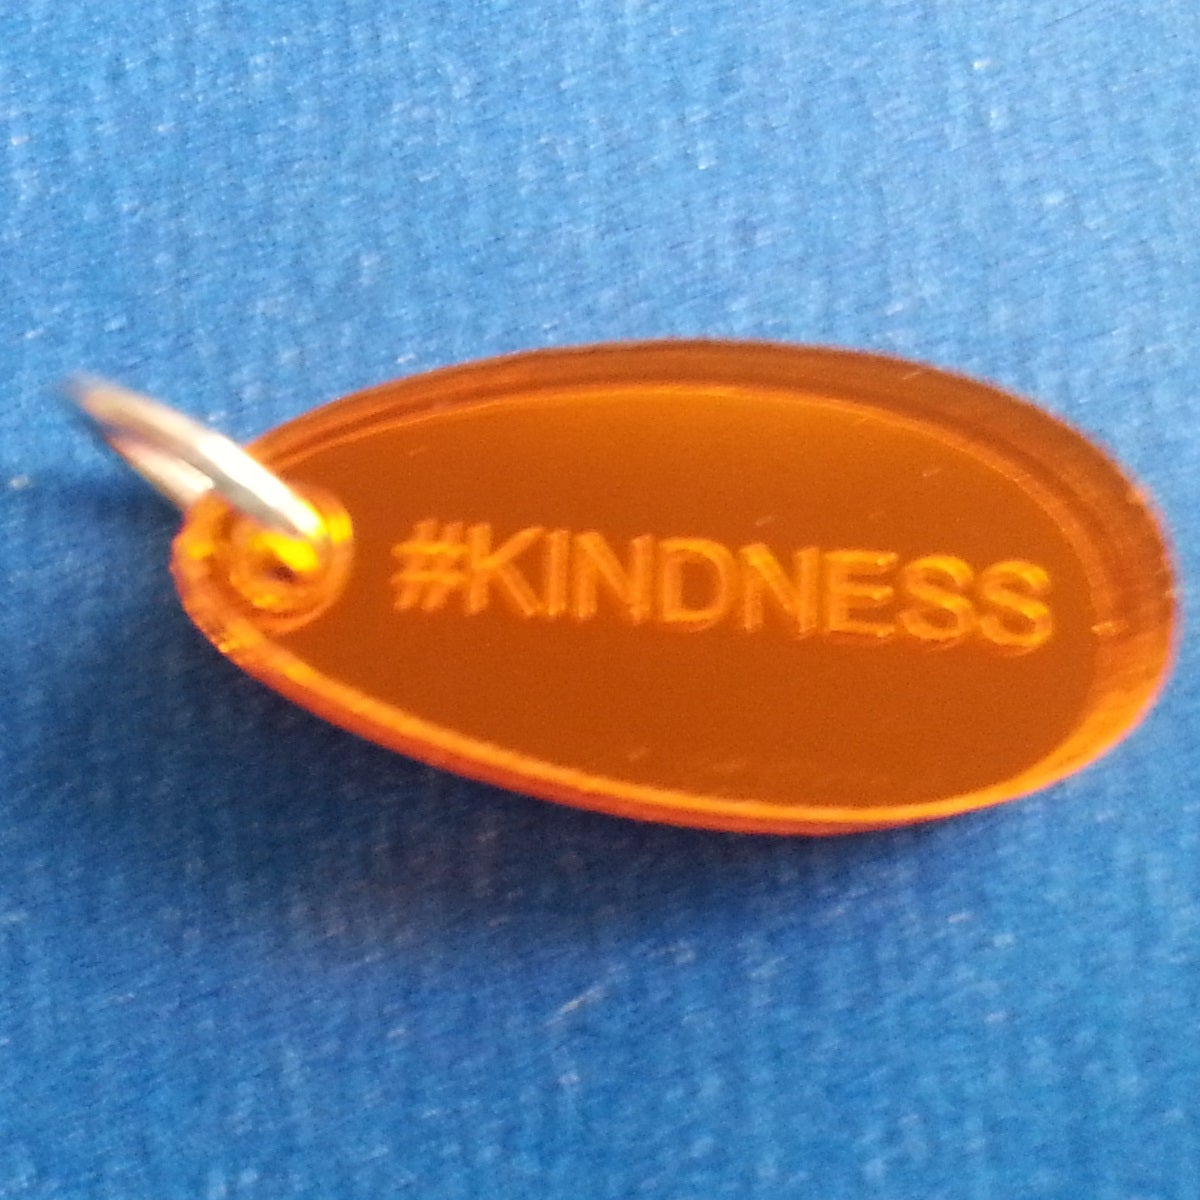 Image of #Kindness